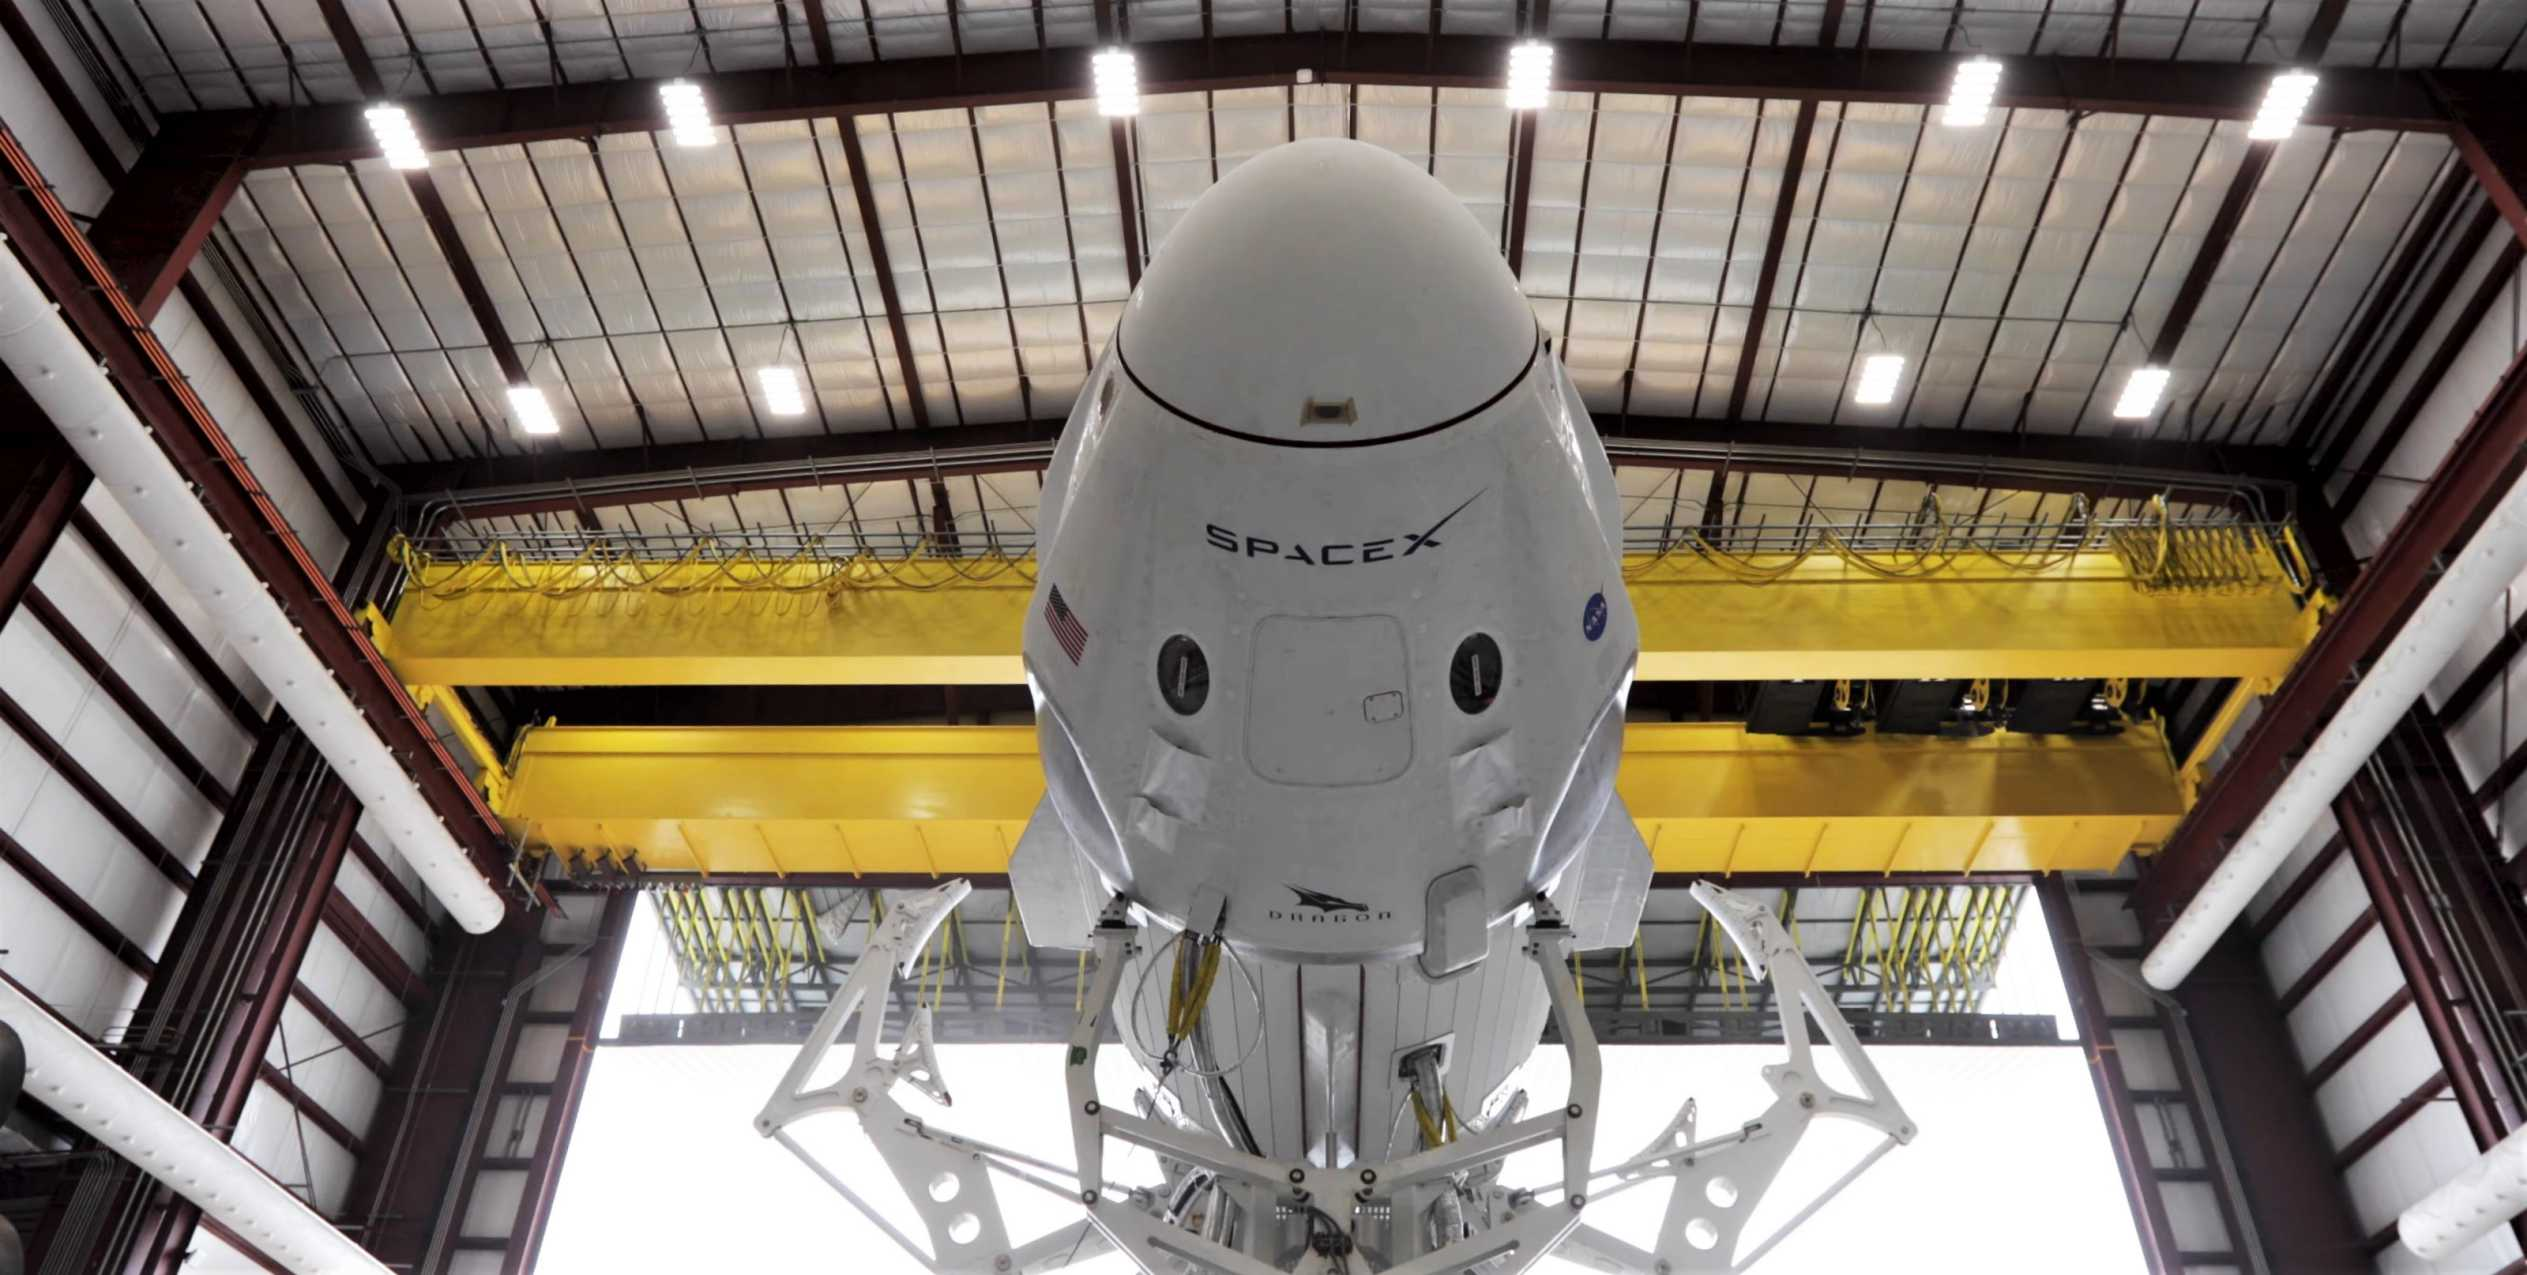 Crew Dragon C201 Demo-1 anniversary (SpaceX) video 1 (c)